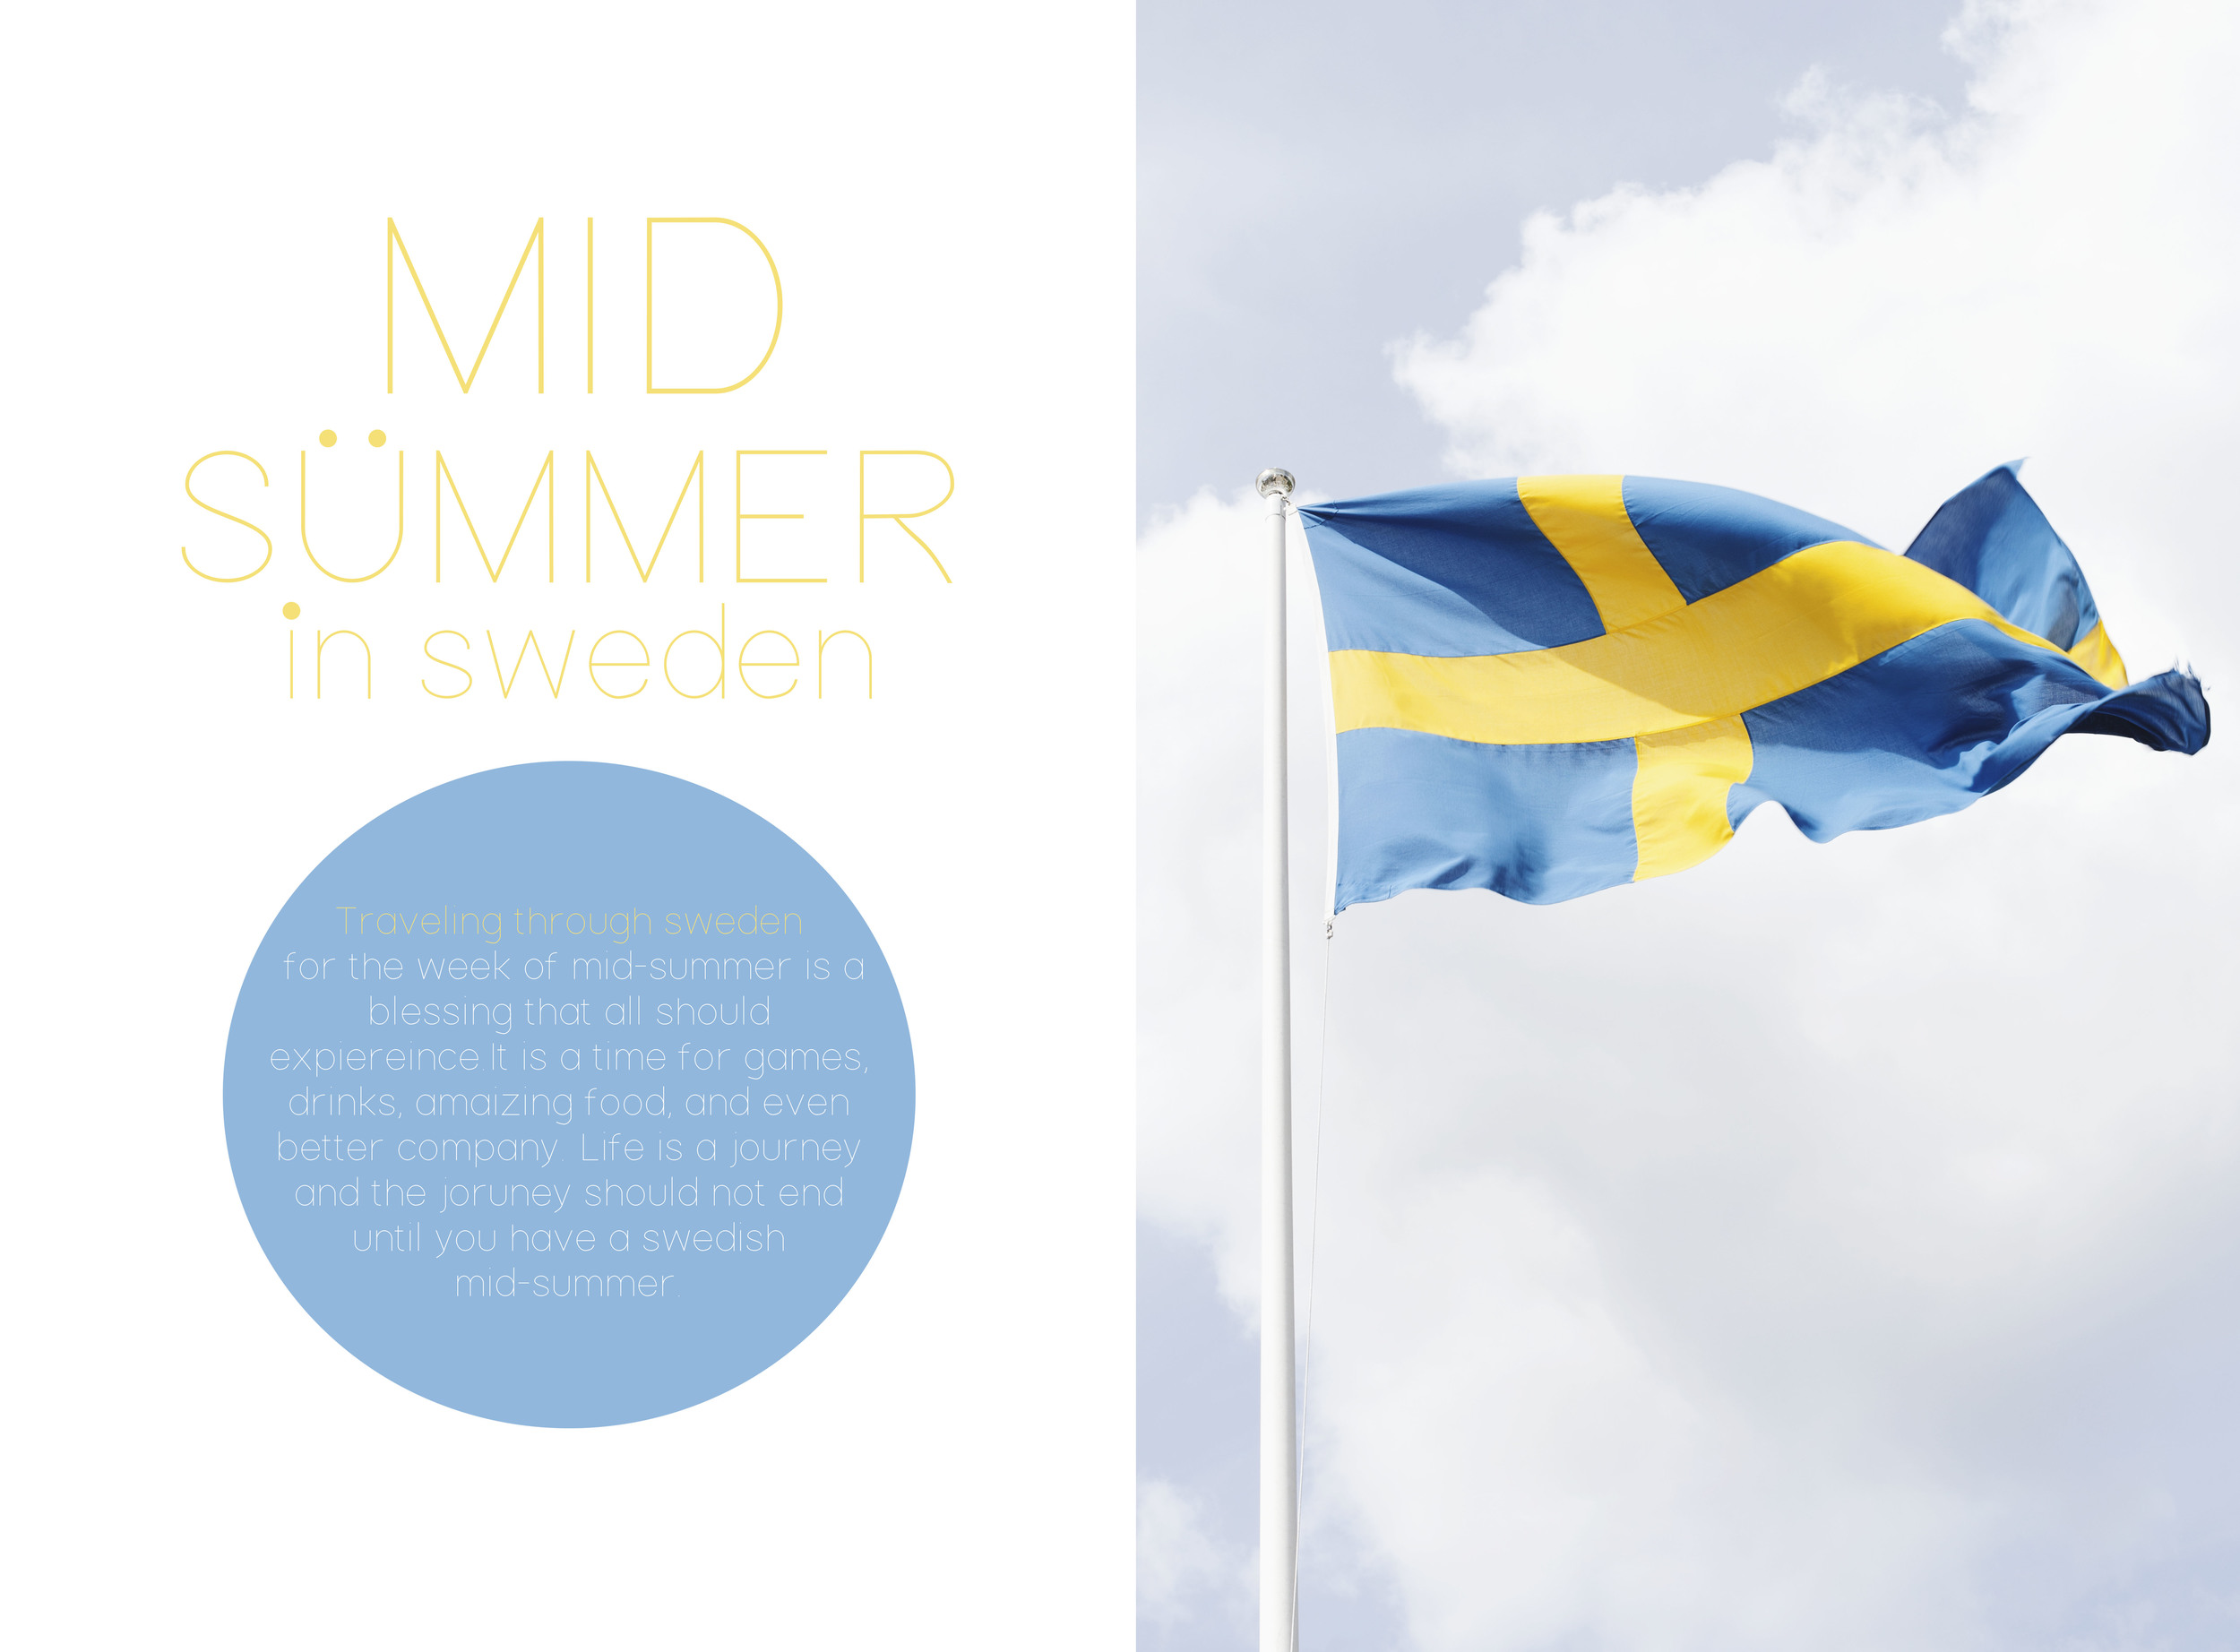 Sweden_Midsummer_Spread_1.jpg